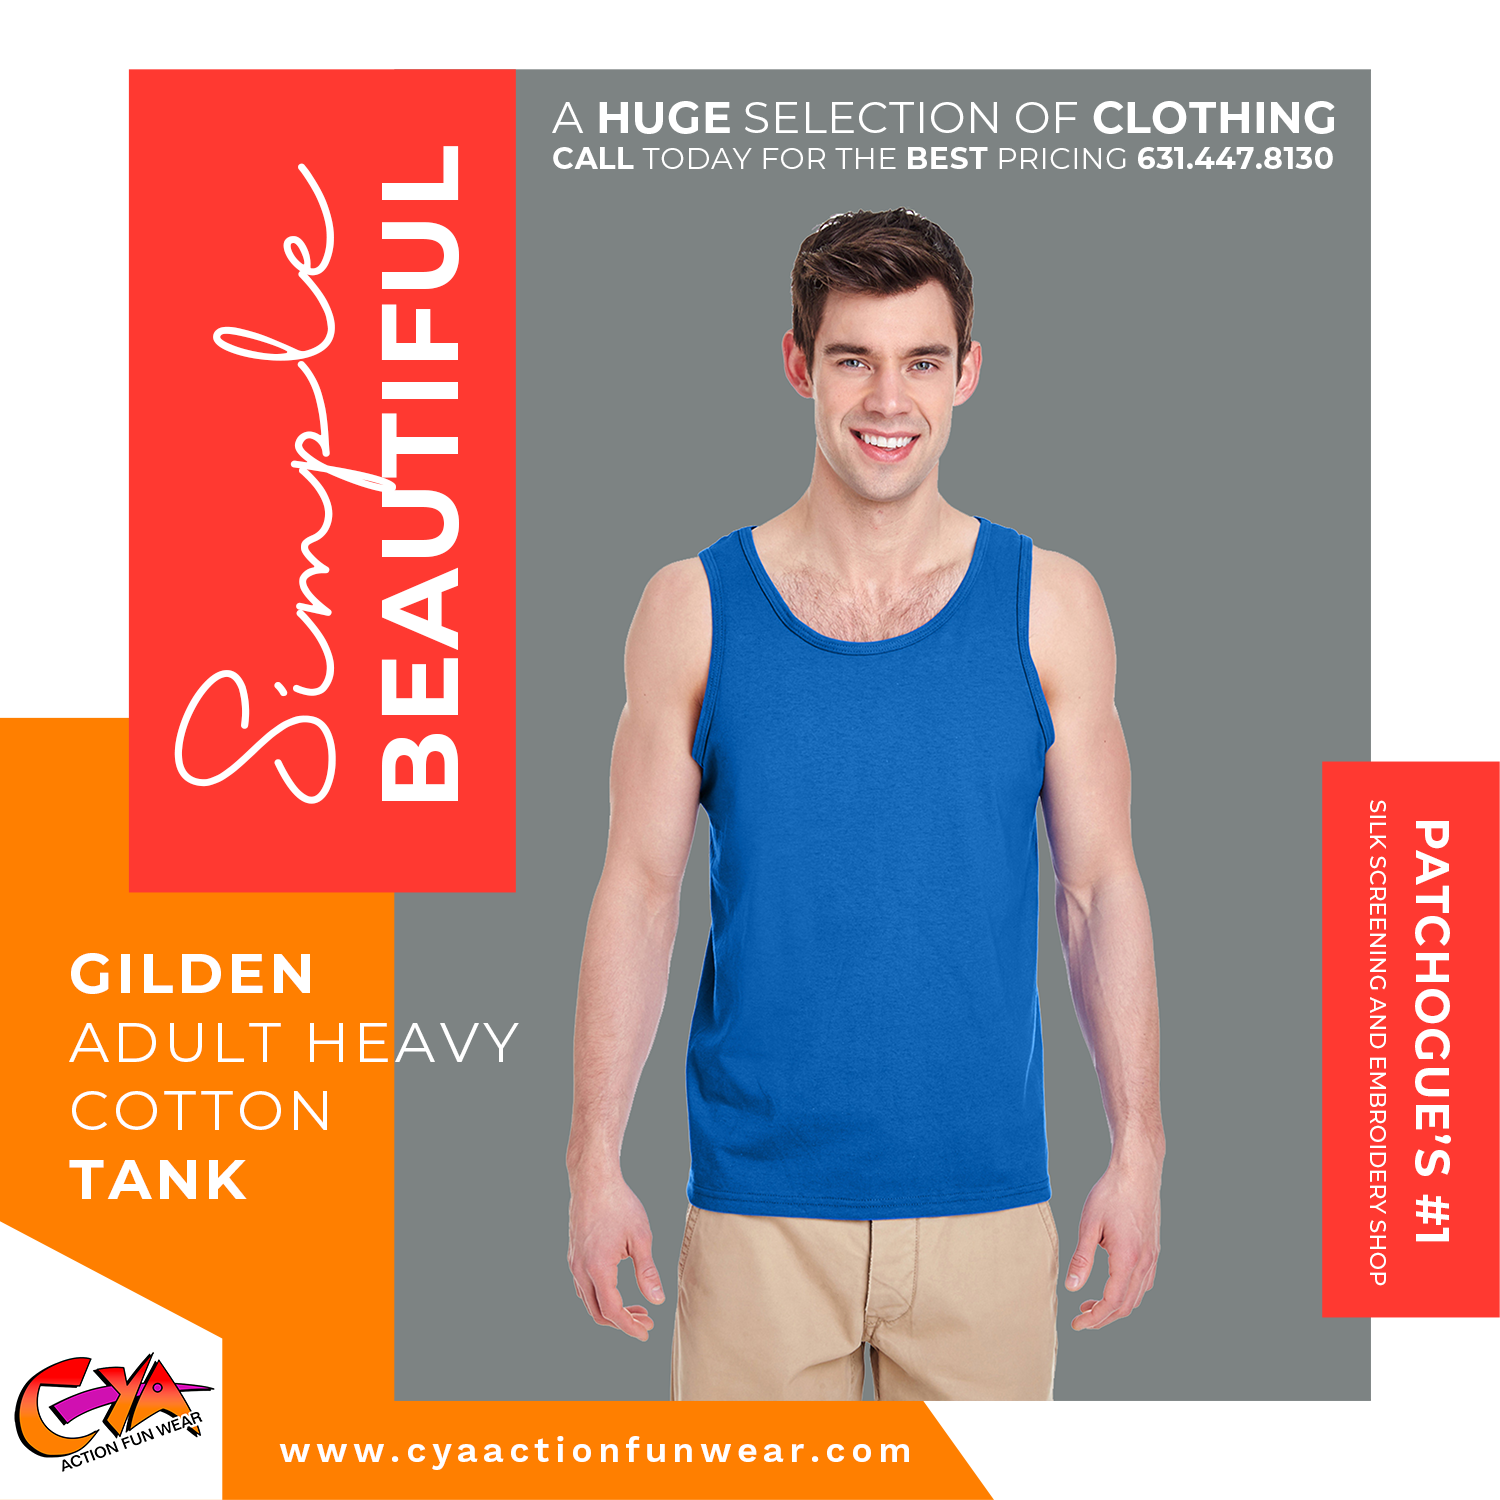 Best Tank Top Prices Patchogue New York